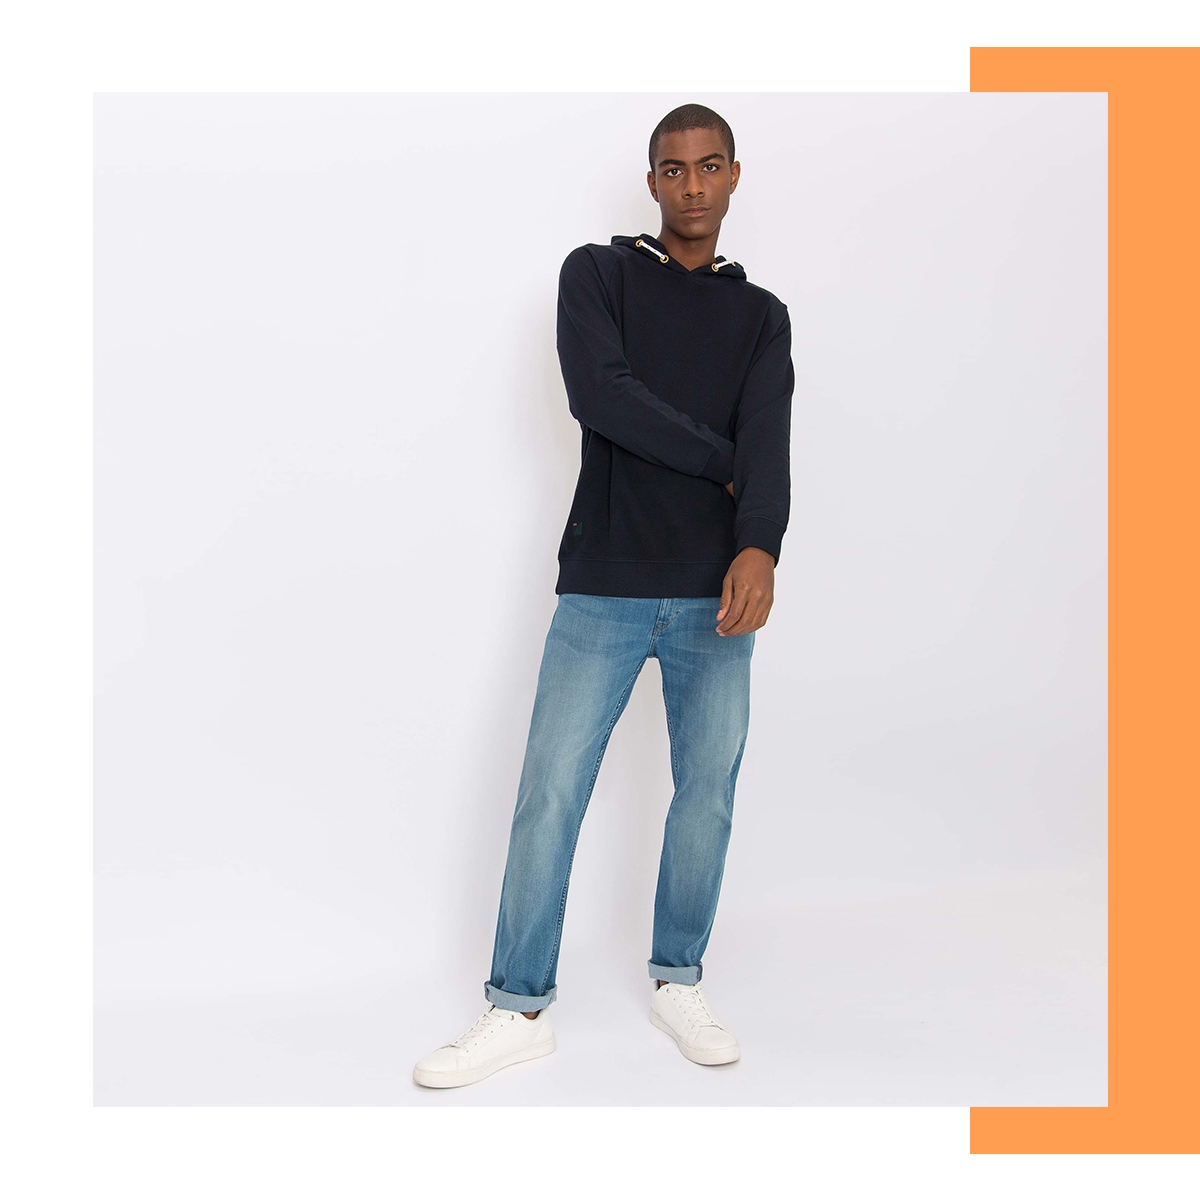 How to style a hoodie: wear it with jeans  . . . #tiffosi #tiffosidenim #holidays #holidayseason #happynewyear #newyear #ourfityourattitude #newcollection #winter #wintercollection #womencollection